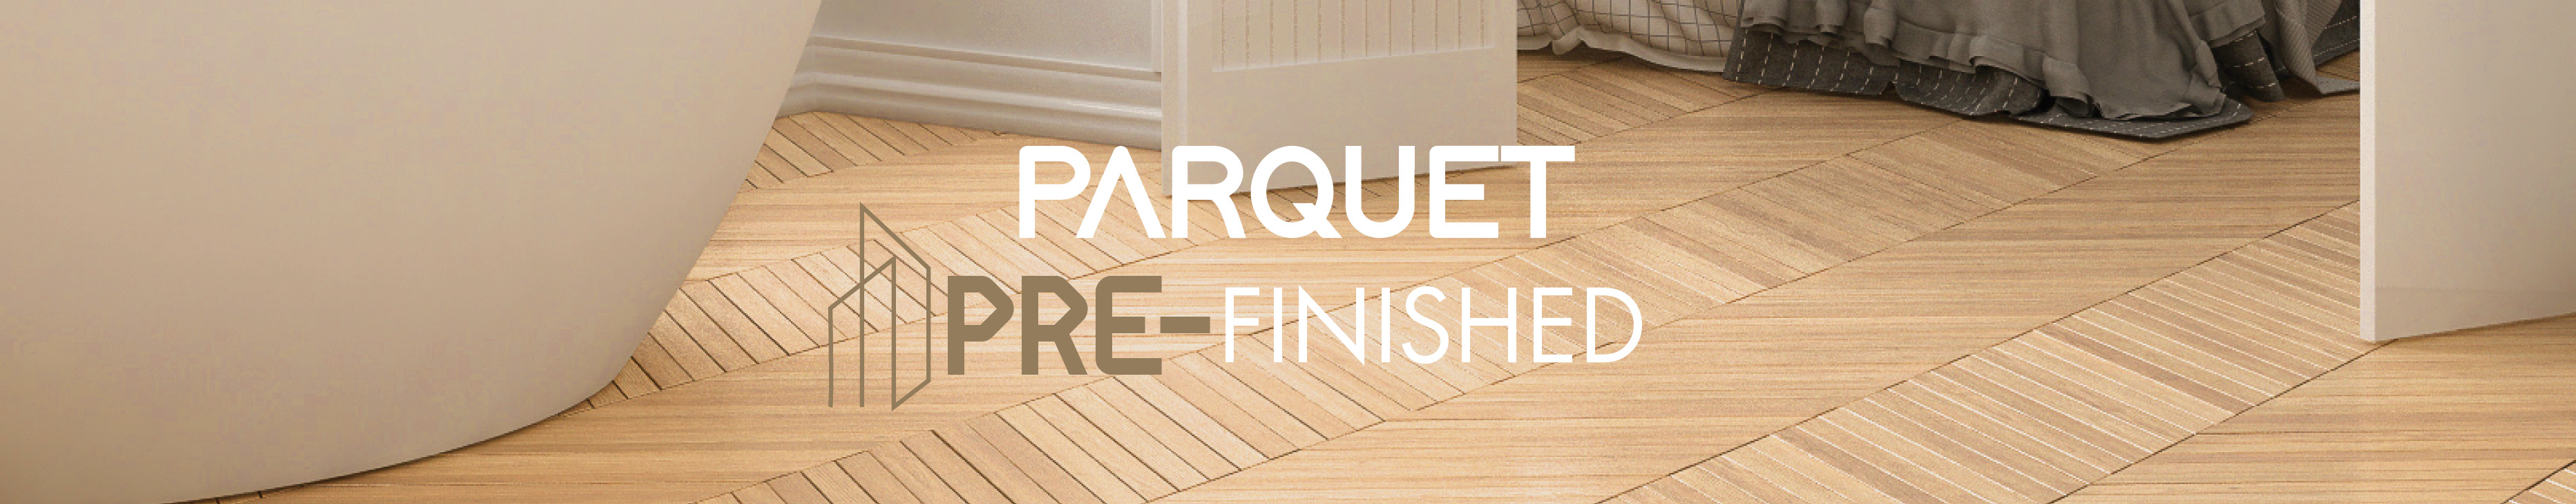 We Love Parquet Concept Store Pre Finished Range